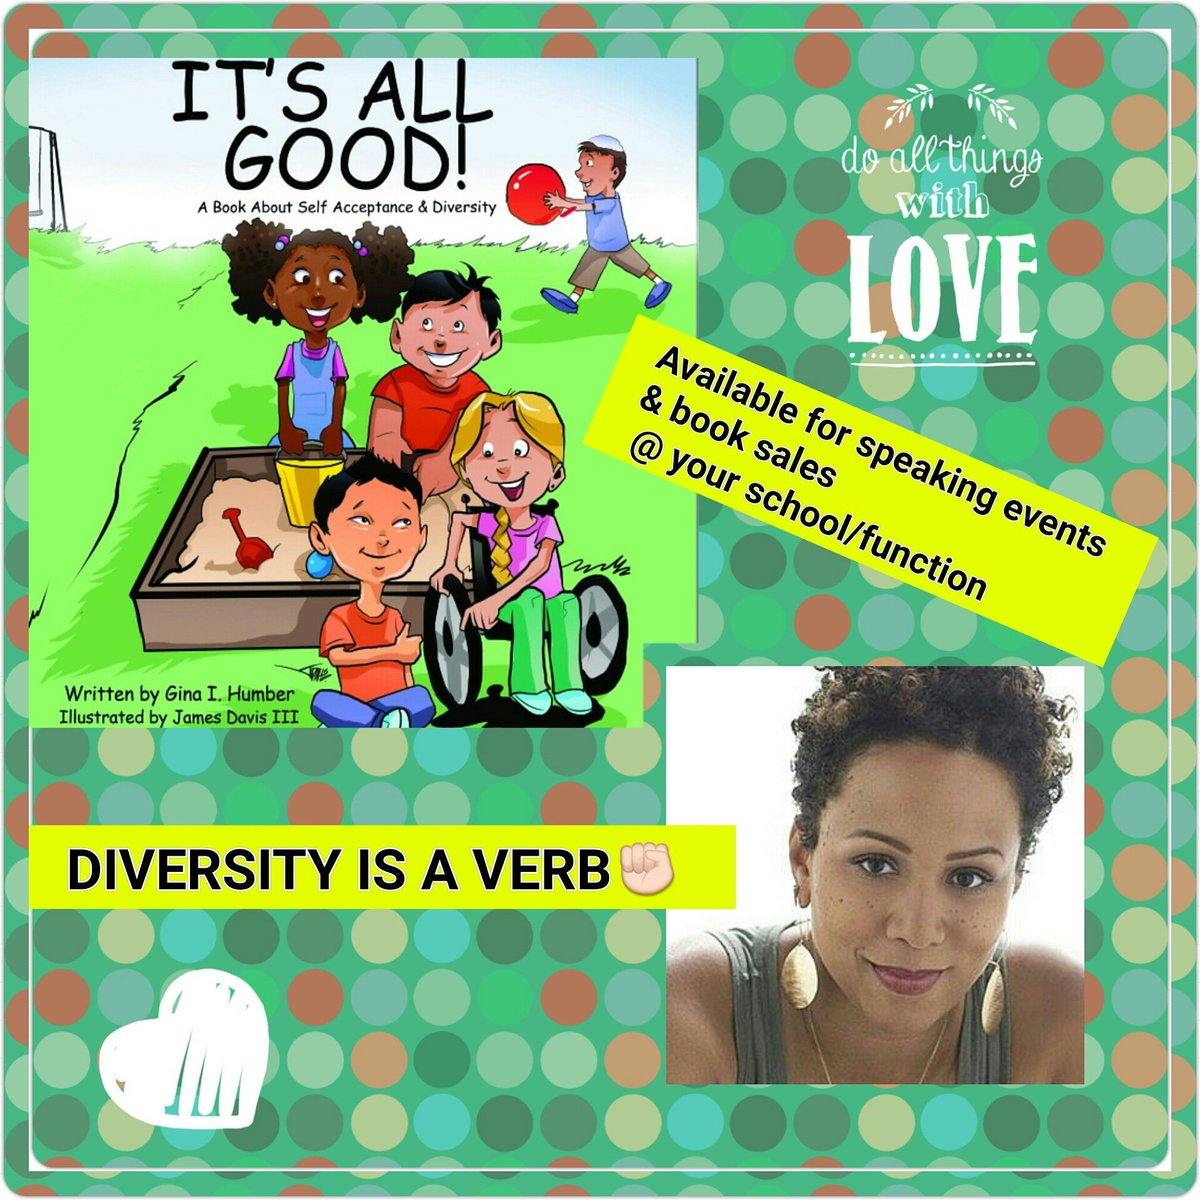 Diversity is a verb!  let's get active and Re-build our Communities! with https://t.co/o82OMNnzFj @ghumber720 https://t.co/Ps01tQdxvA